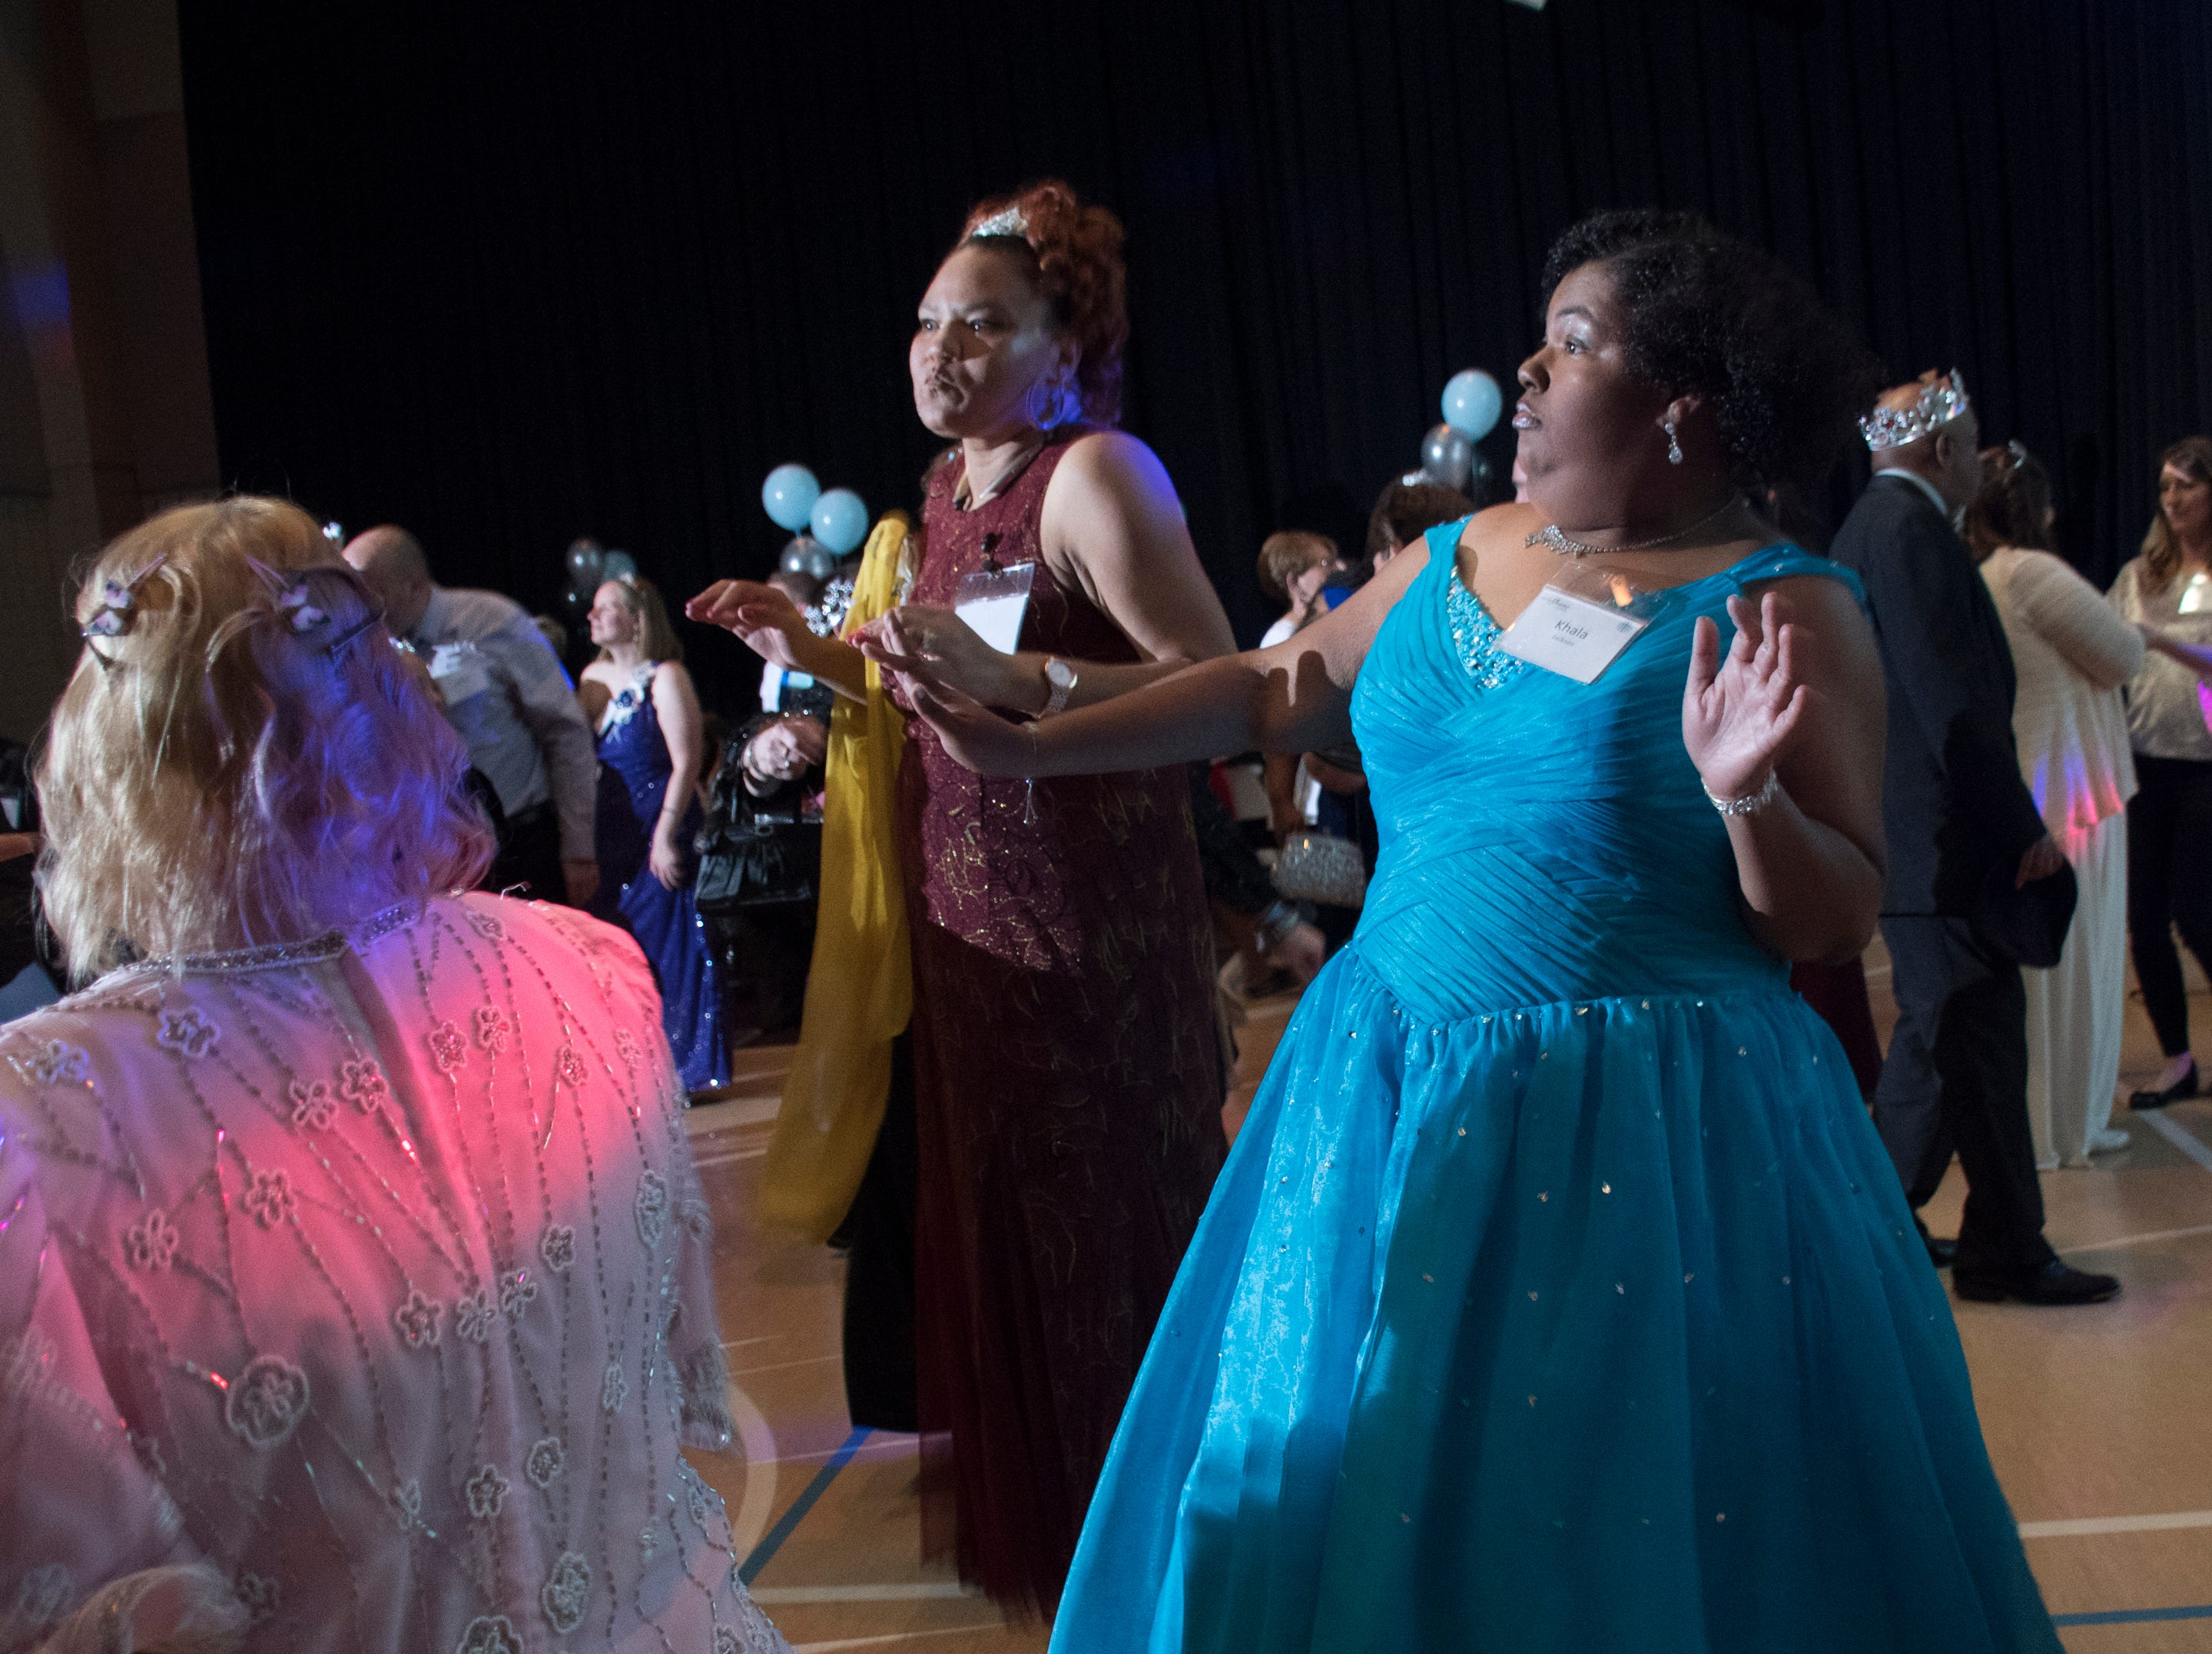 Khala Jackson shows her dance moves during the Night to Shine prom for people with special needs sponsored by the Tim Tebow Foundation at Perdido Bay United Methodist Church in Pensacola on Friday, February 8, 2019.